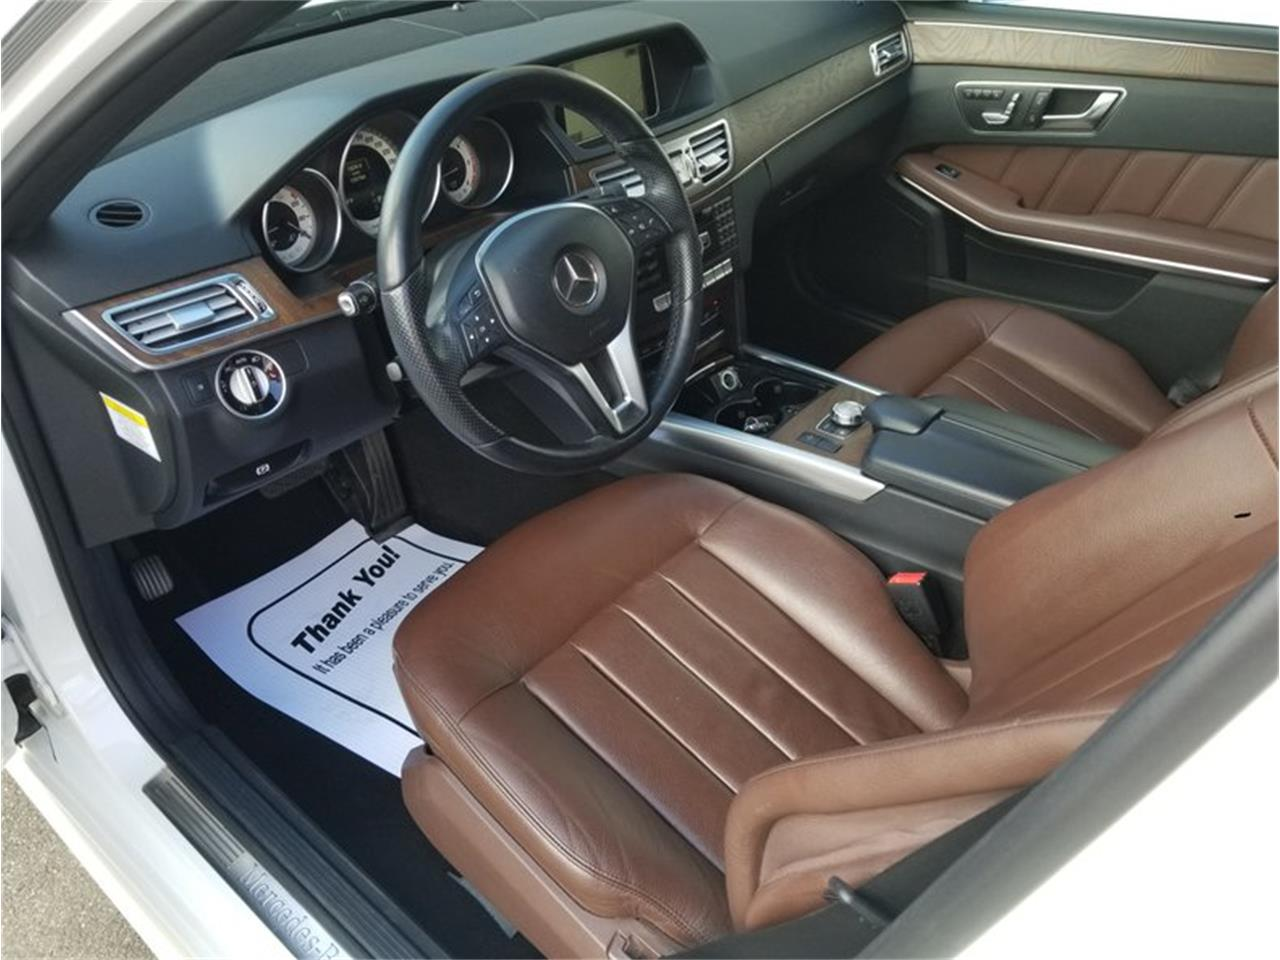 2014 Mercedes-Benz E-Class (CC-1220415) for sale in Wallingford, Connecticut